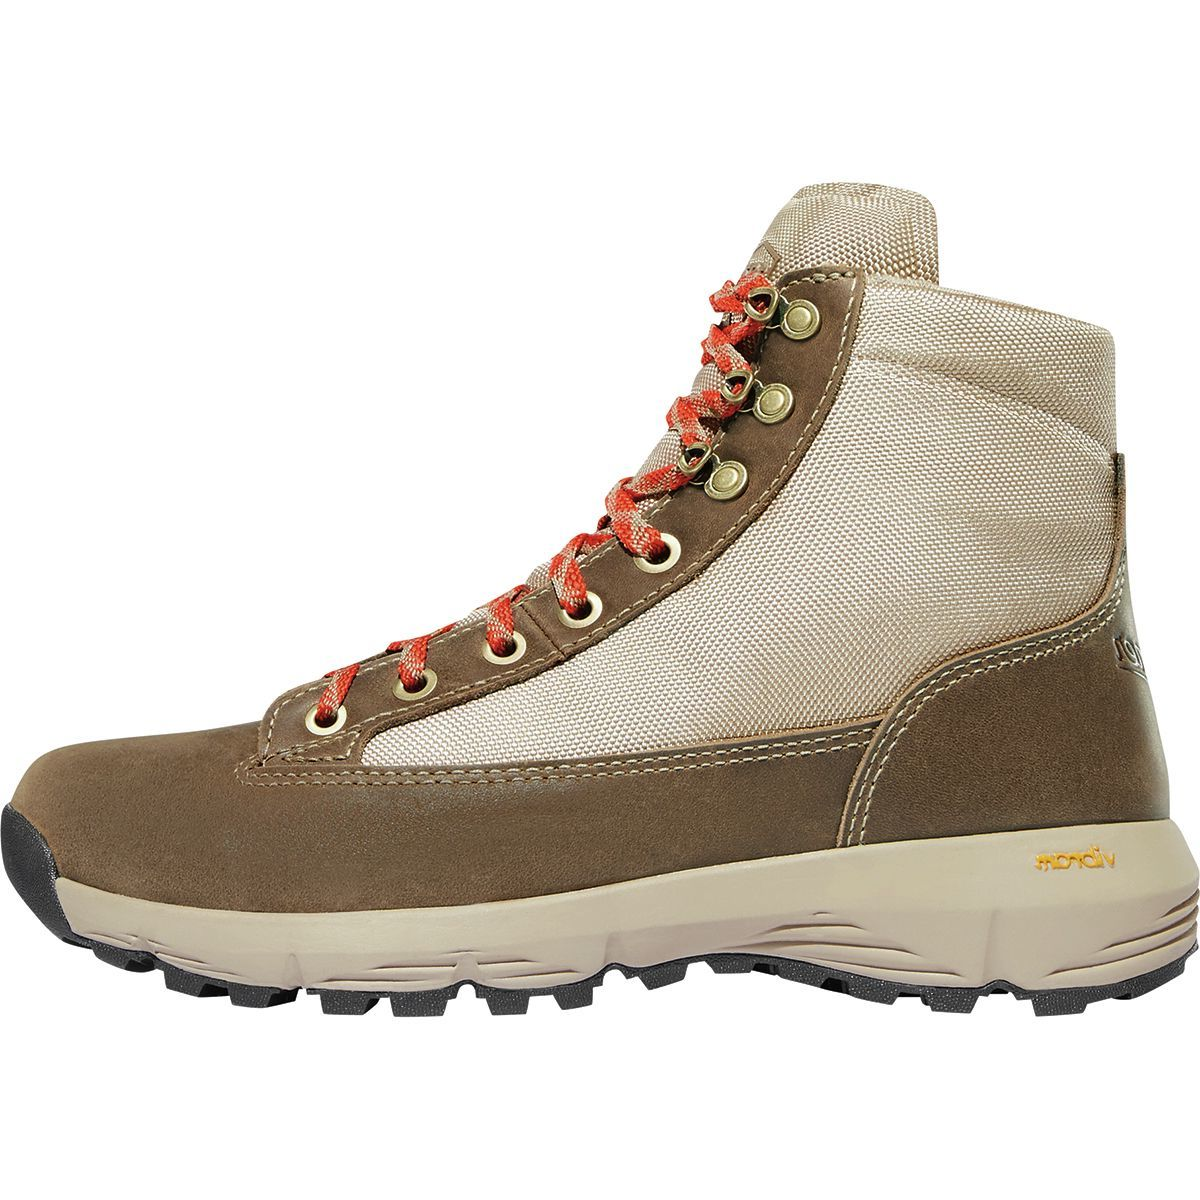 Danner Explorer 650 Hiking Boot - Women's